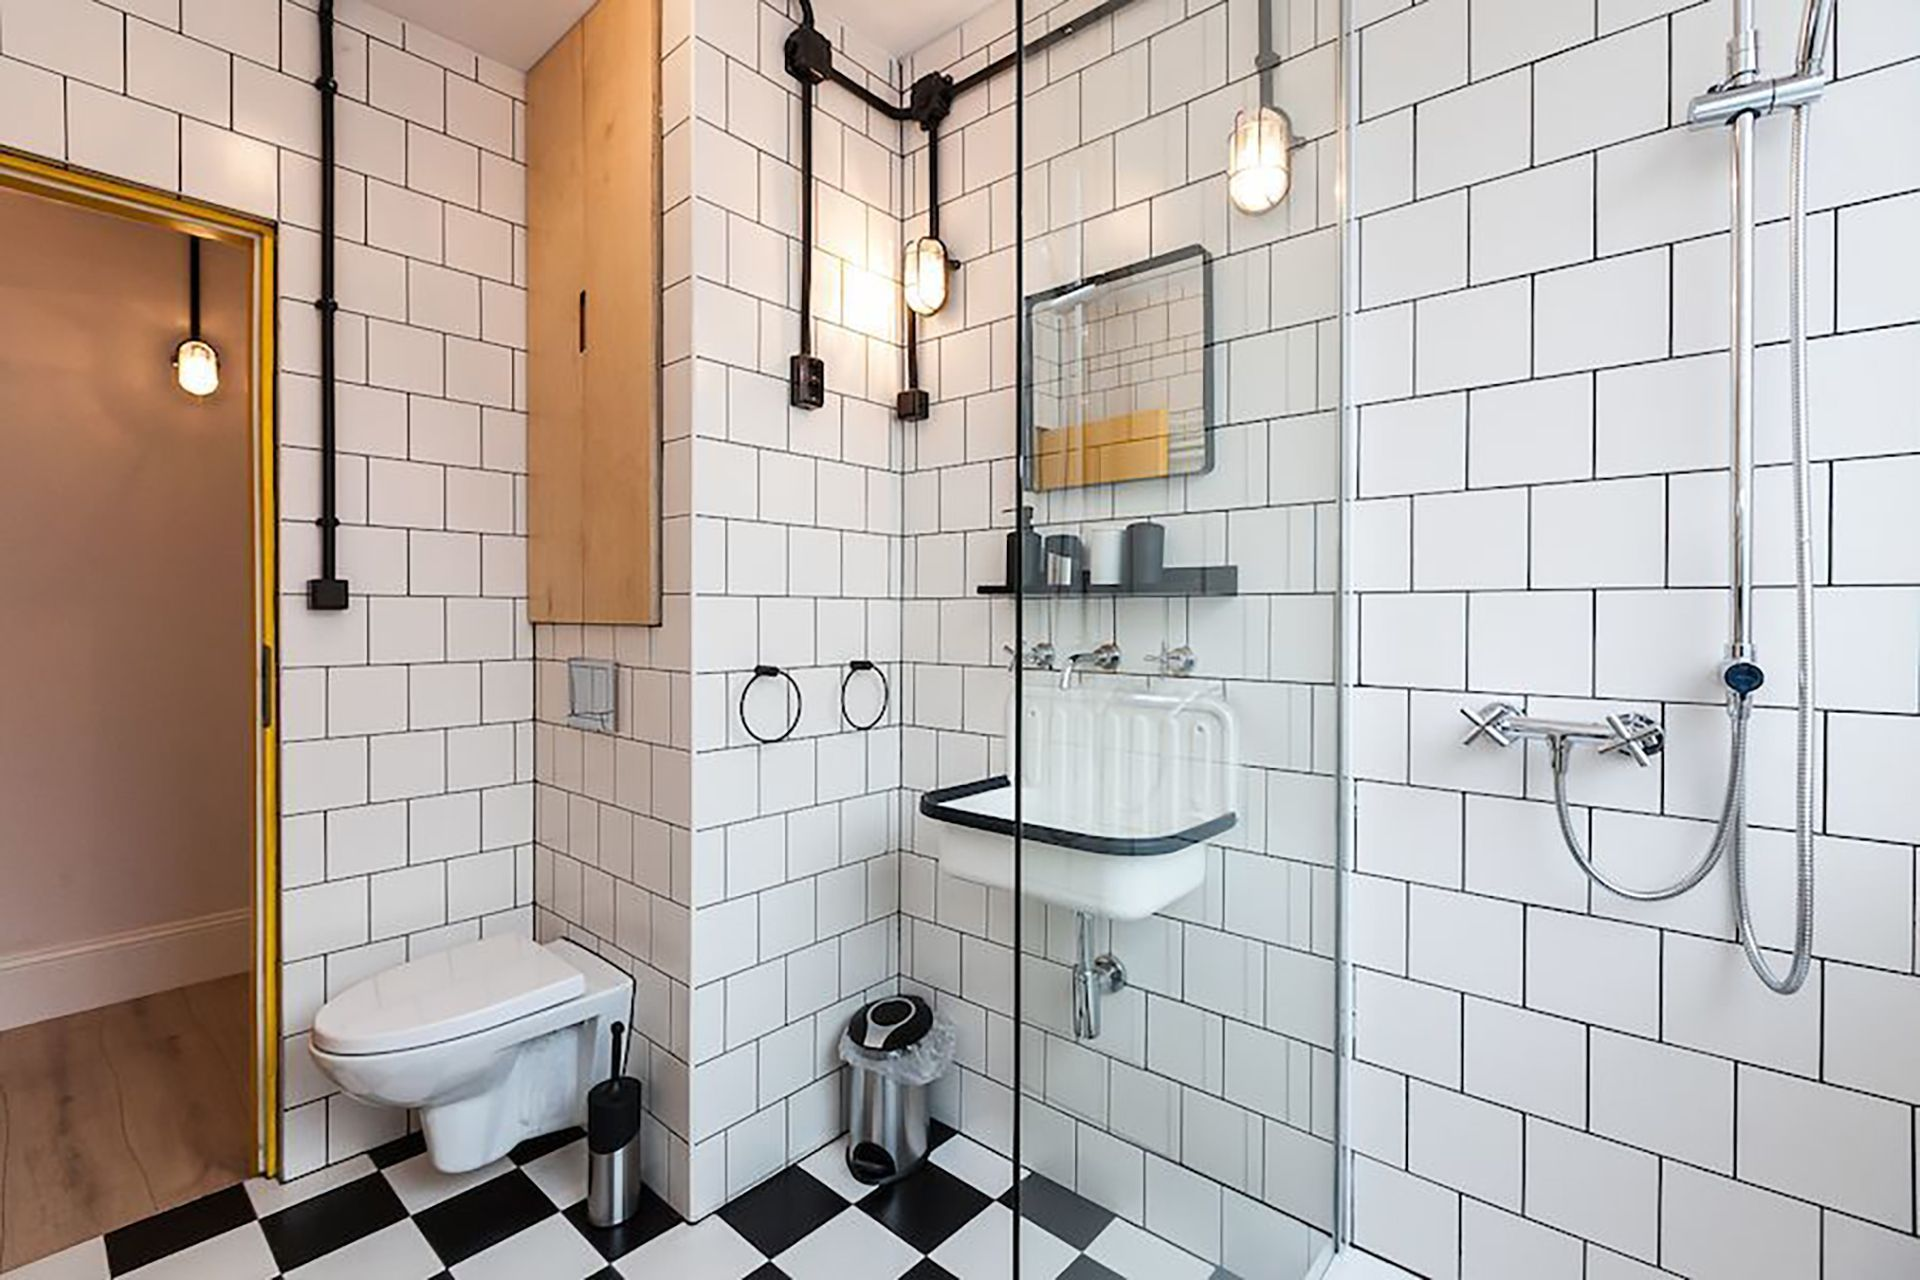 Private Room - Large apartment to rent in Berlin BILE-LE95-2094-2